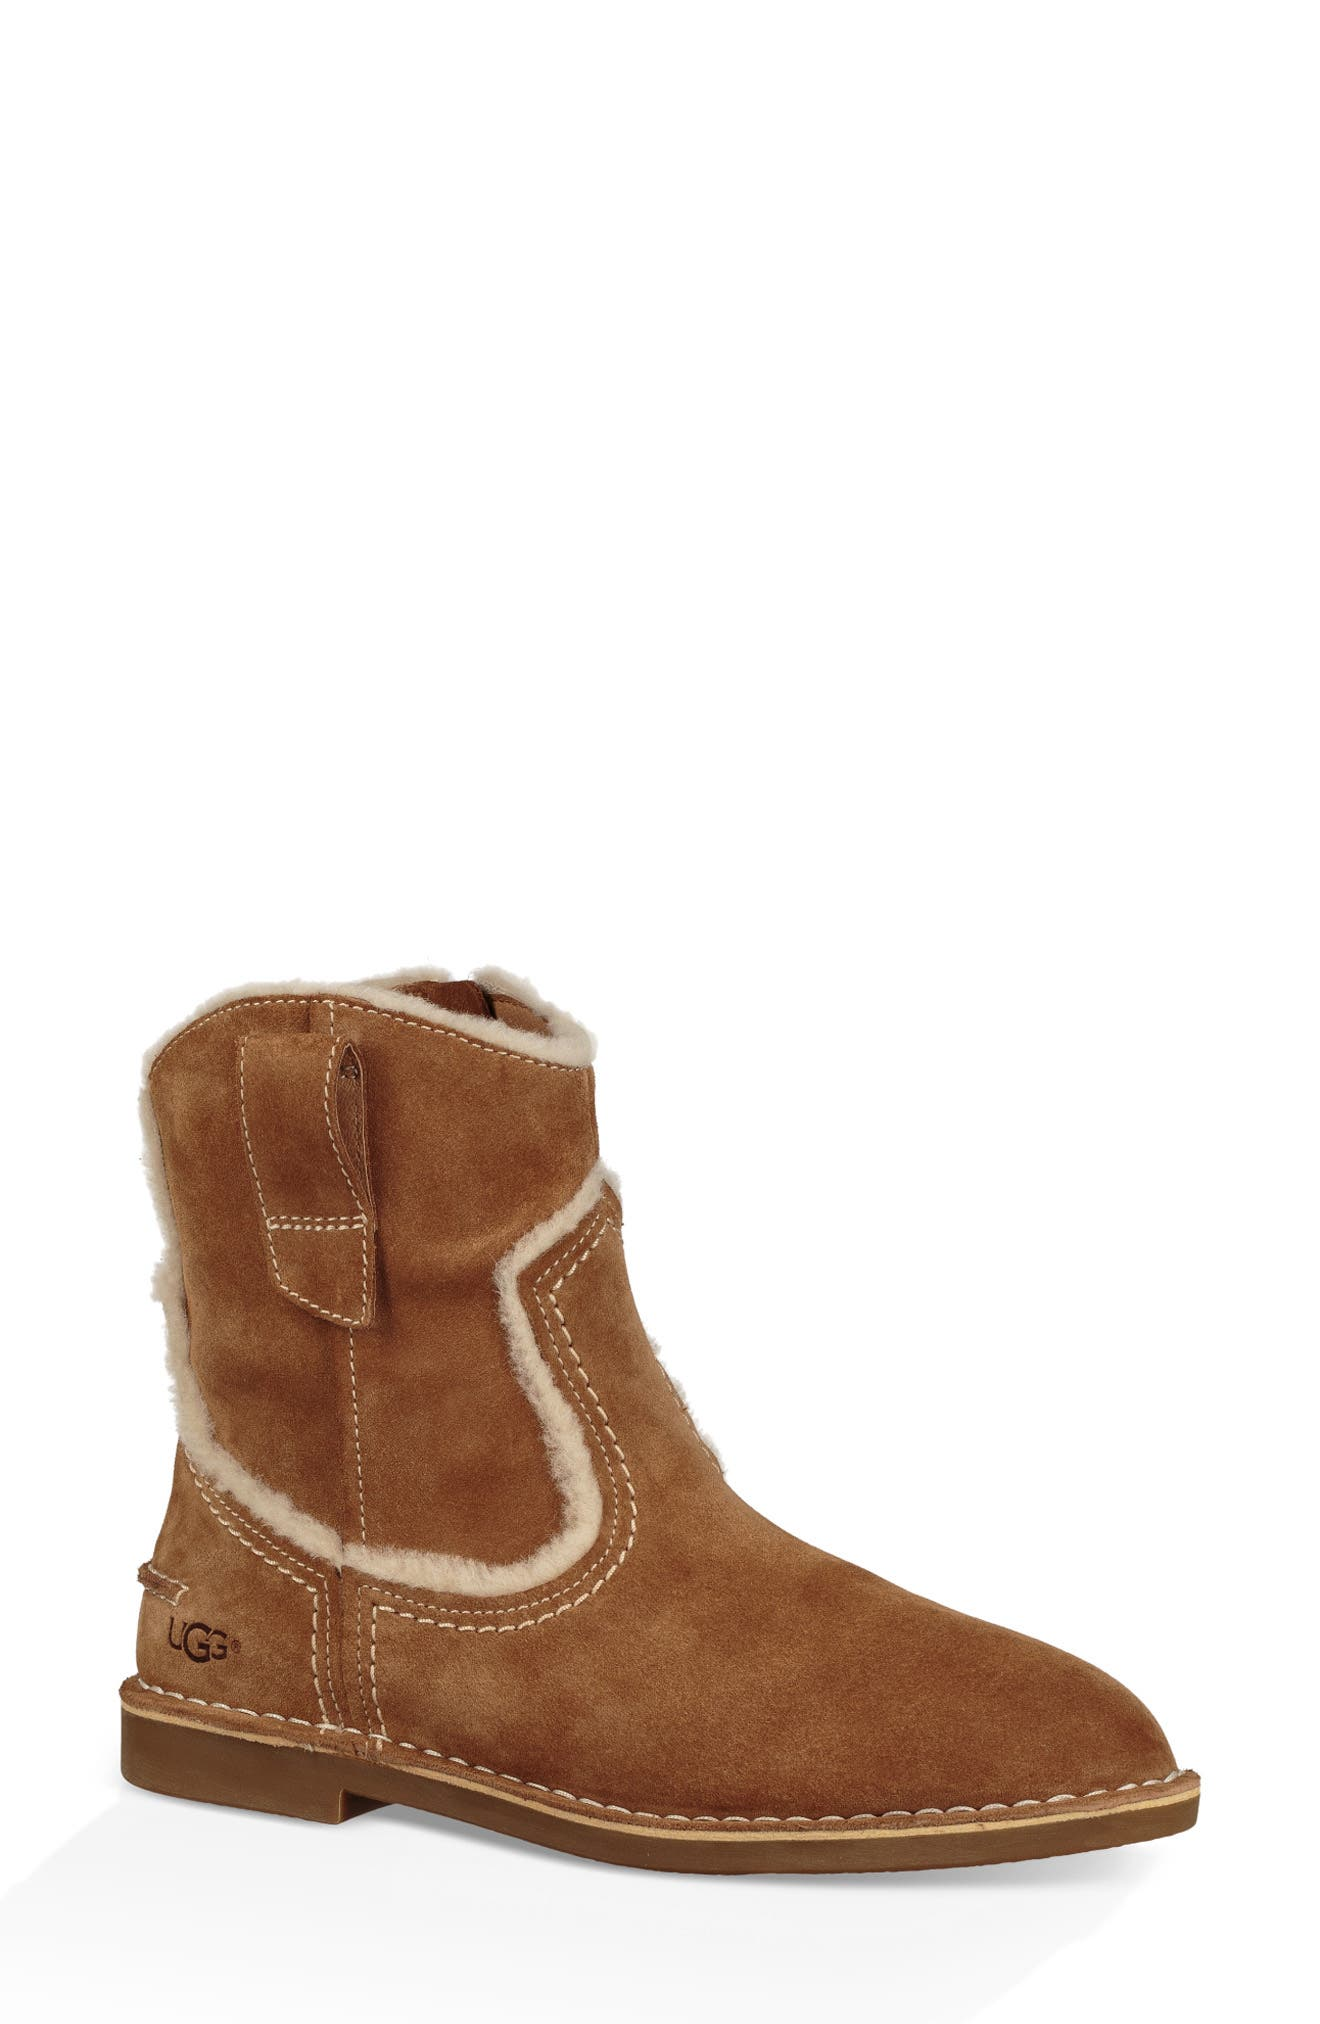 ugg outlet usa price